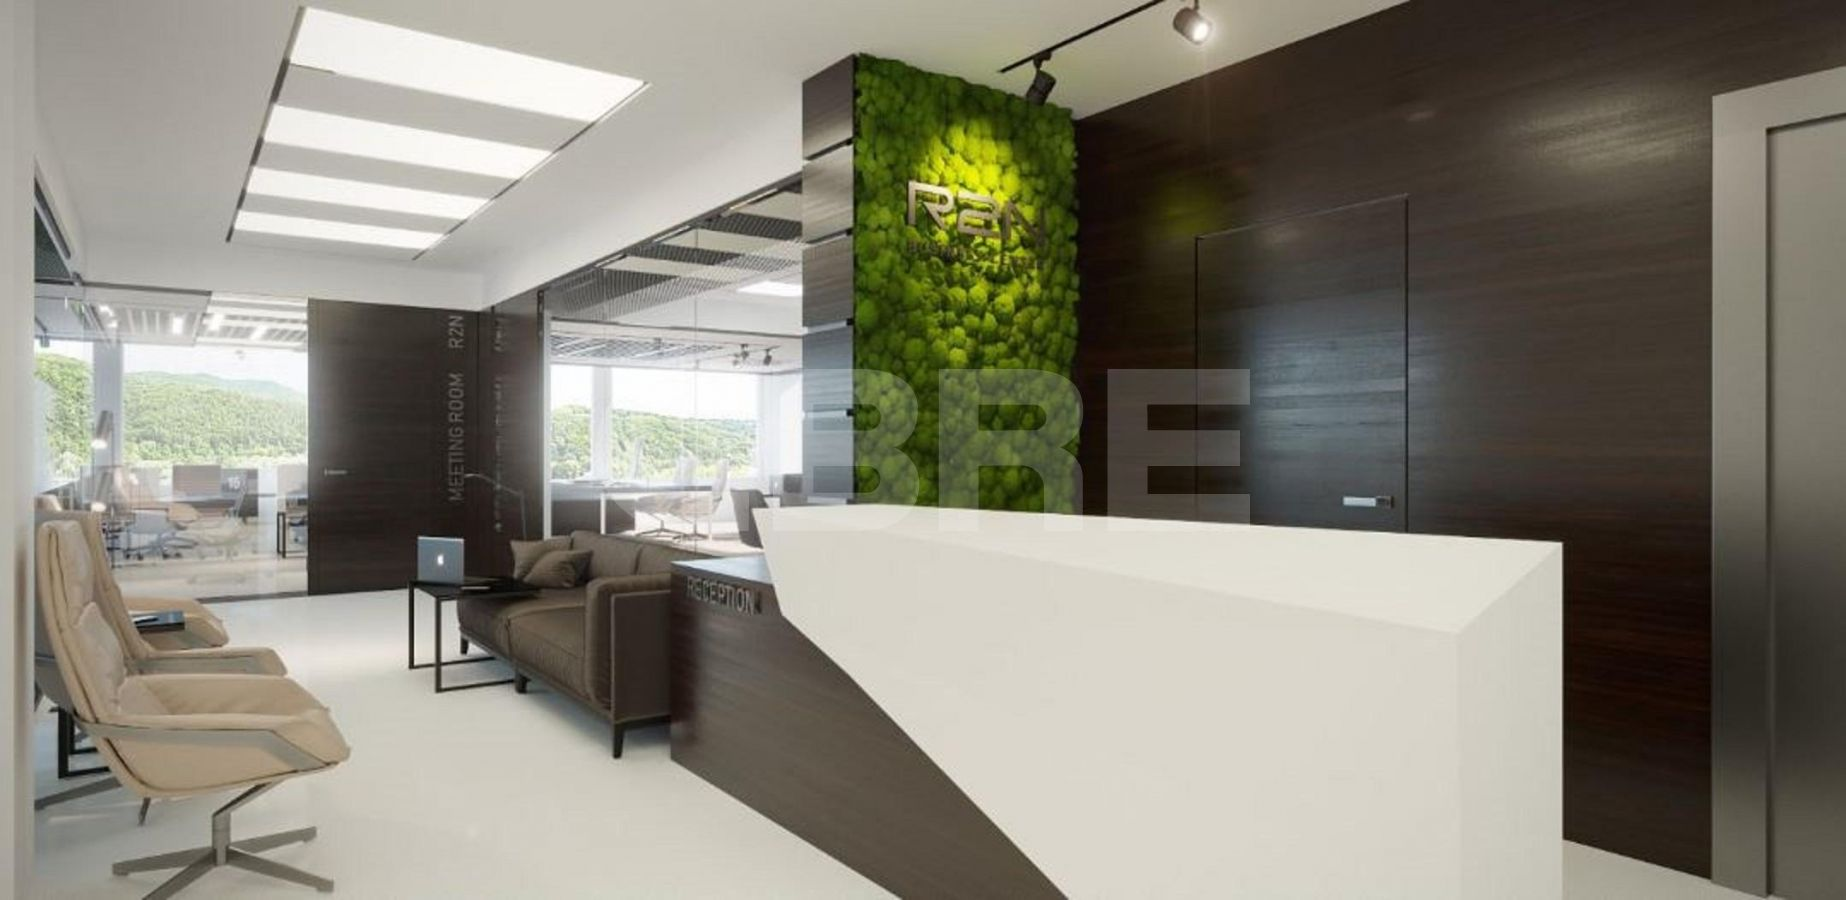 R2N Business Center, Banská Bystrica | Offices for rent by CBRE | 2